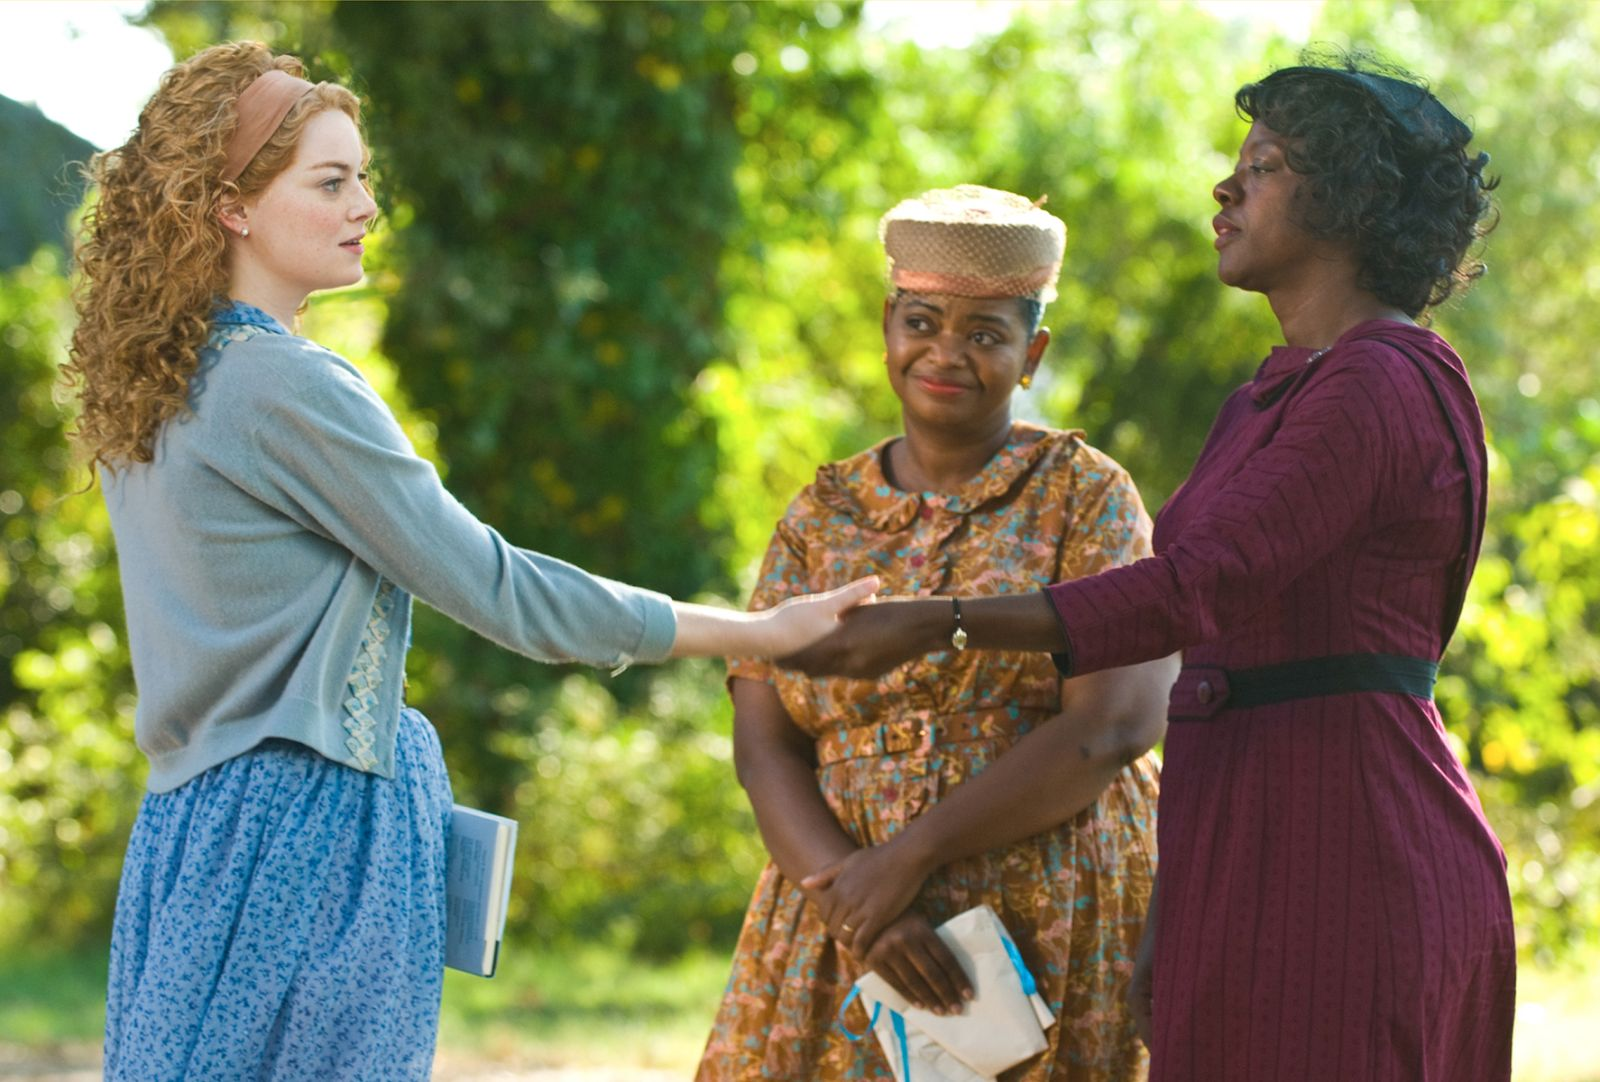 the help movie review jackson order essay online